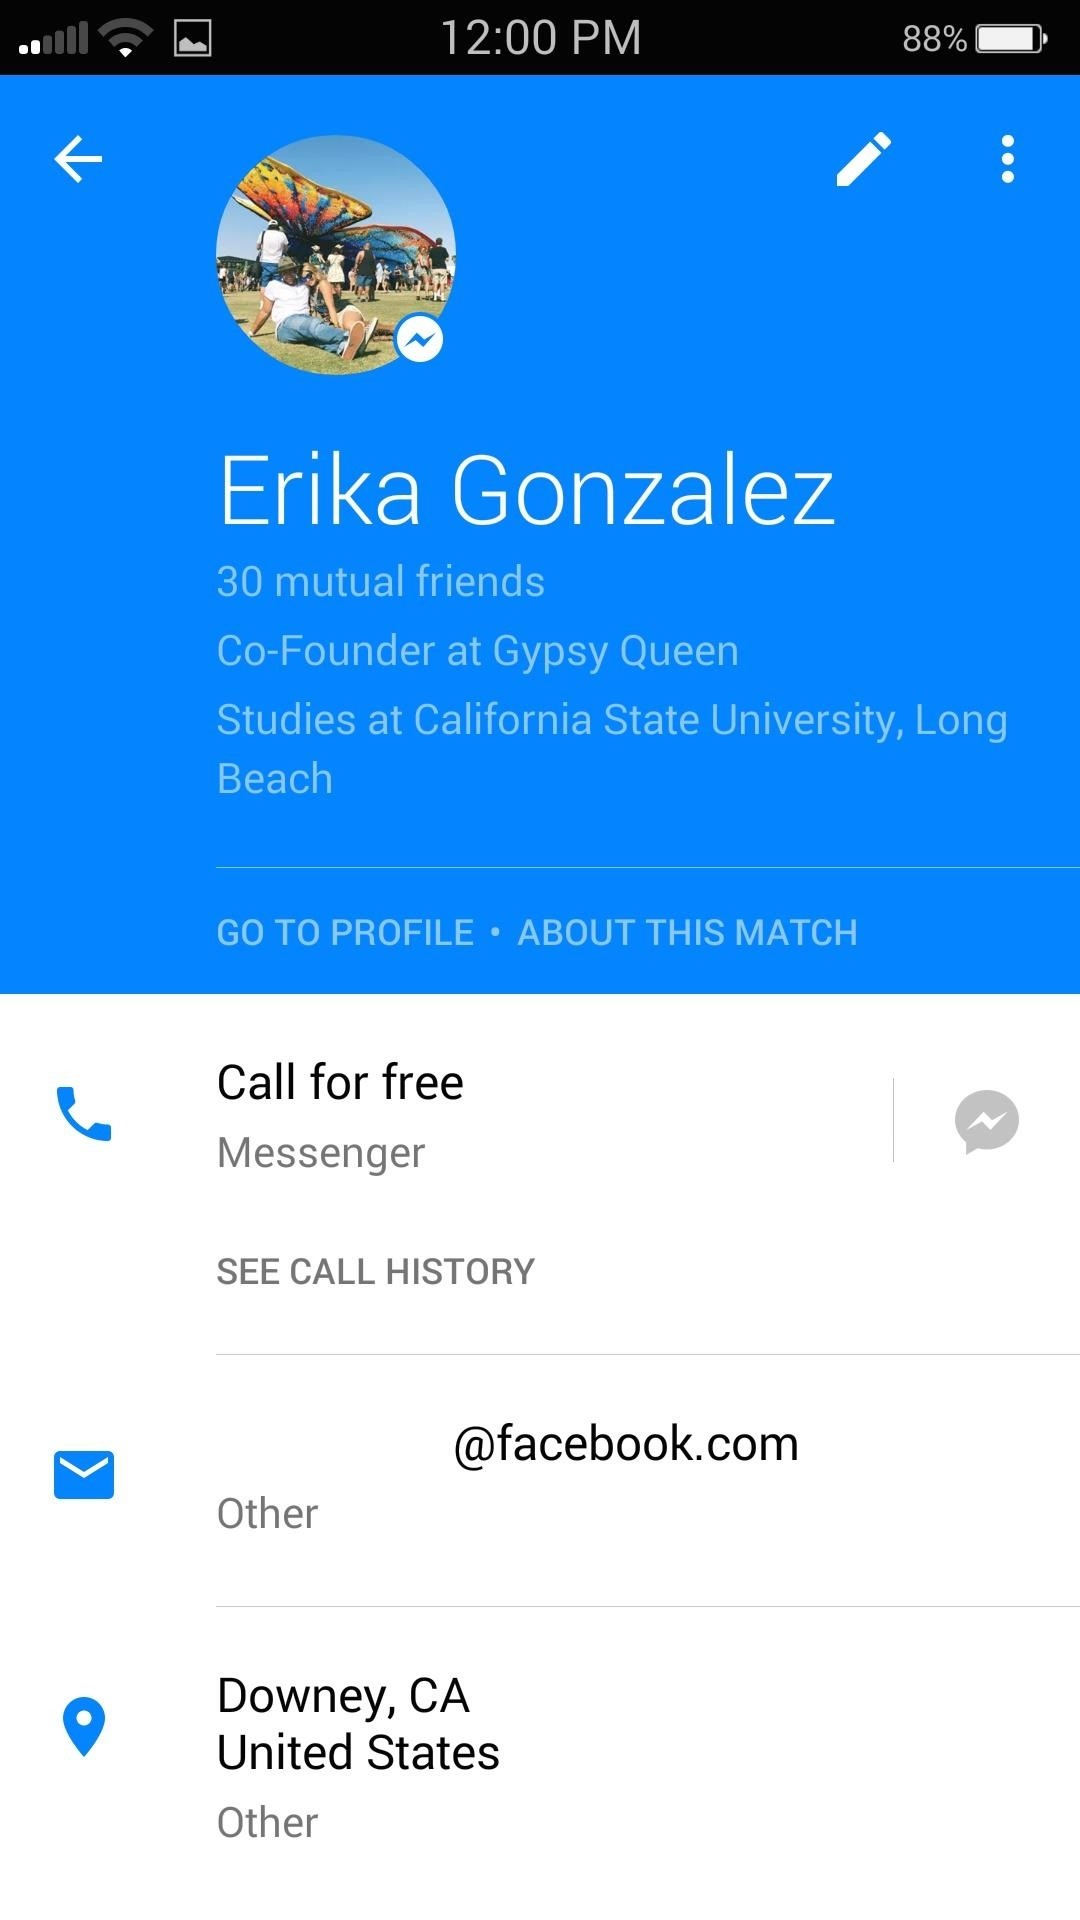 Facebook's New Hello App Makes Your Android's Dialer & Contact List Smarter